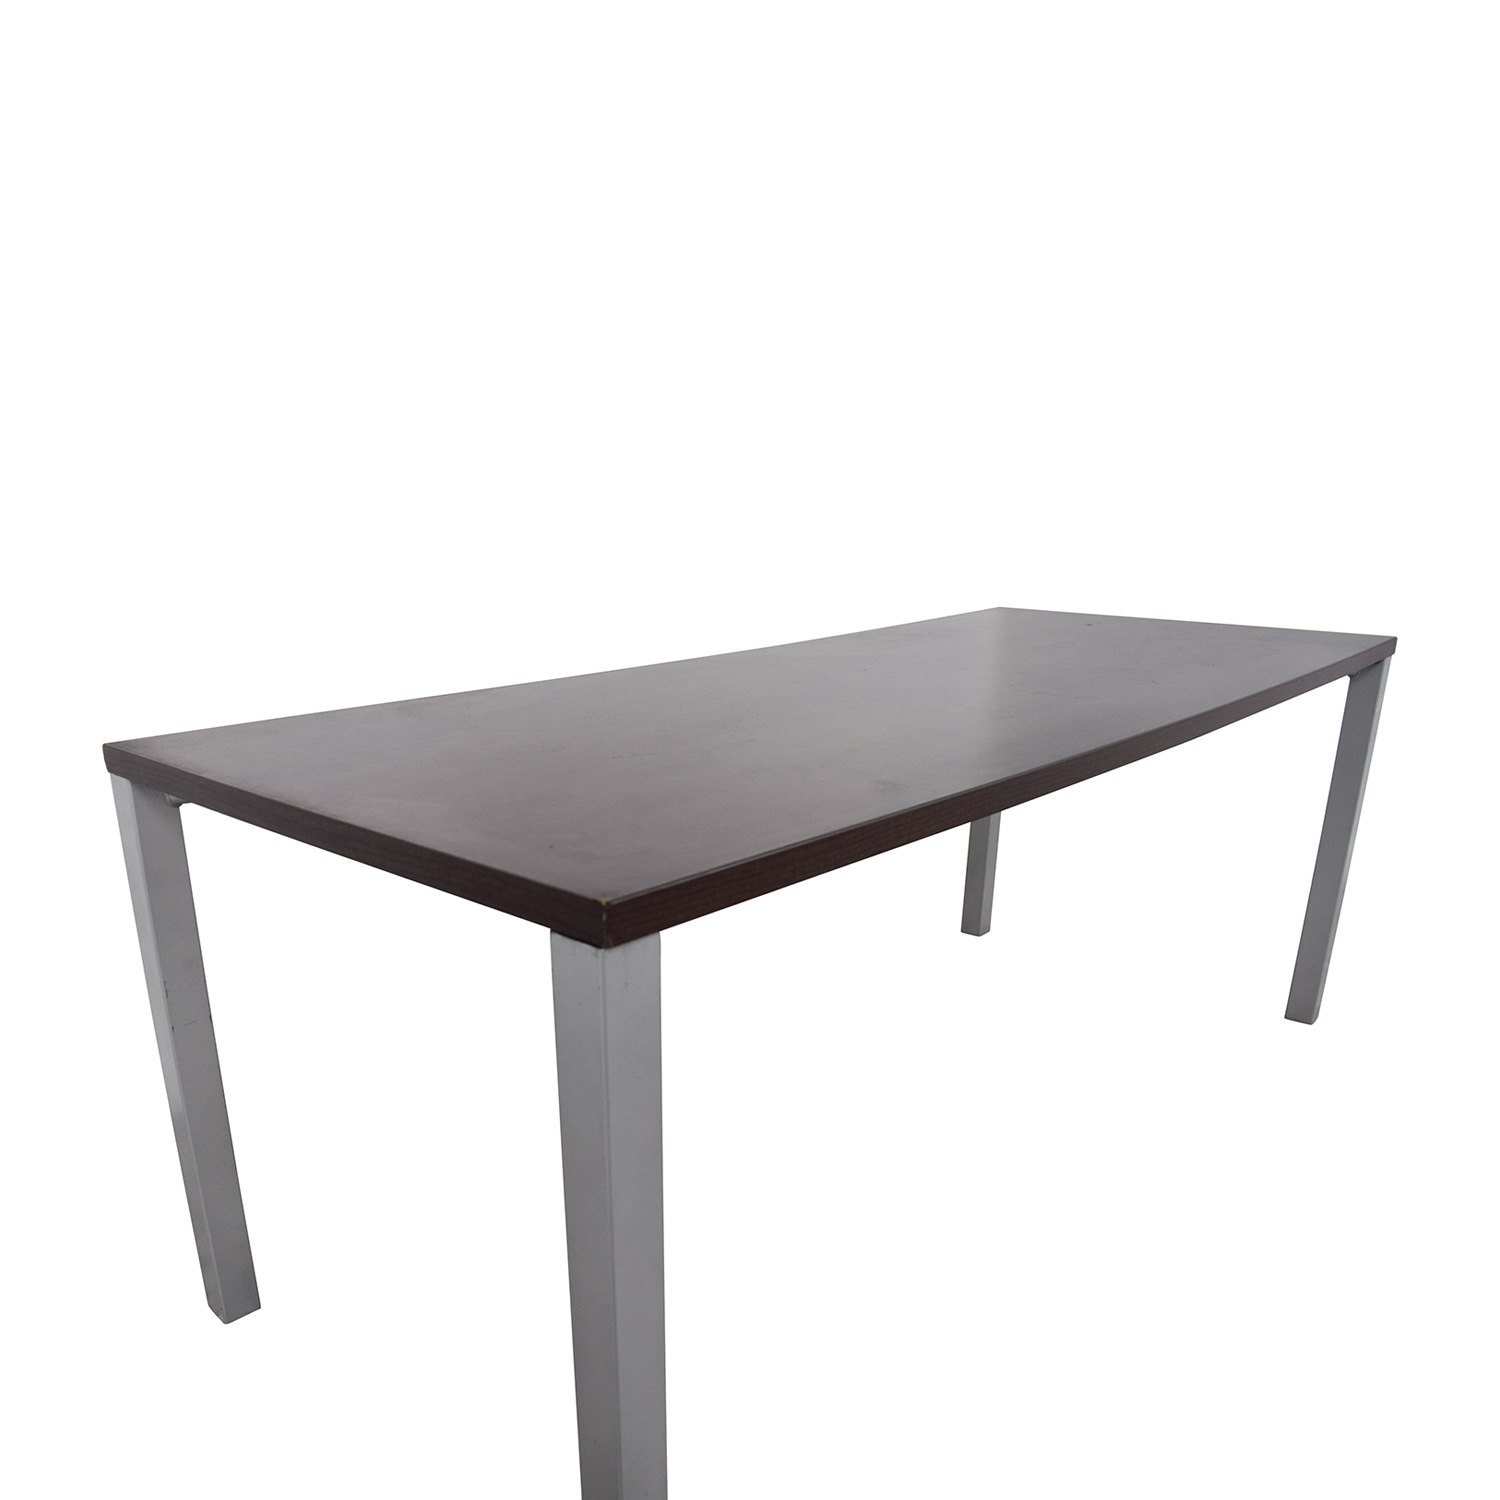 Steelcase Steelcase Currency Martin Desk dimensions